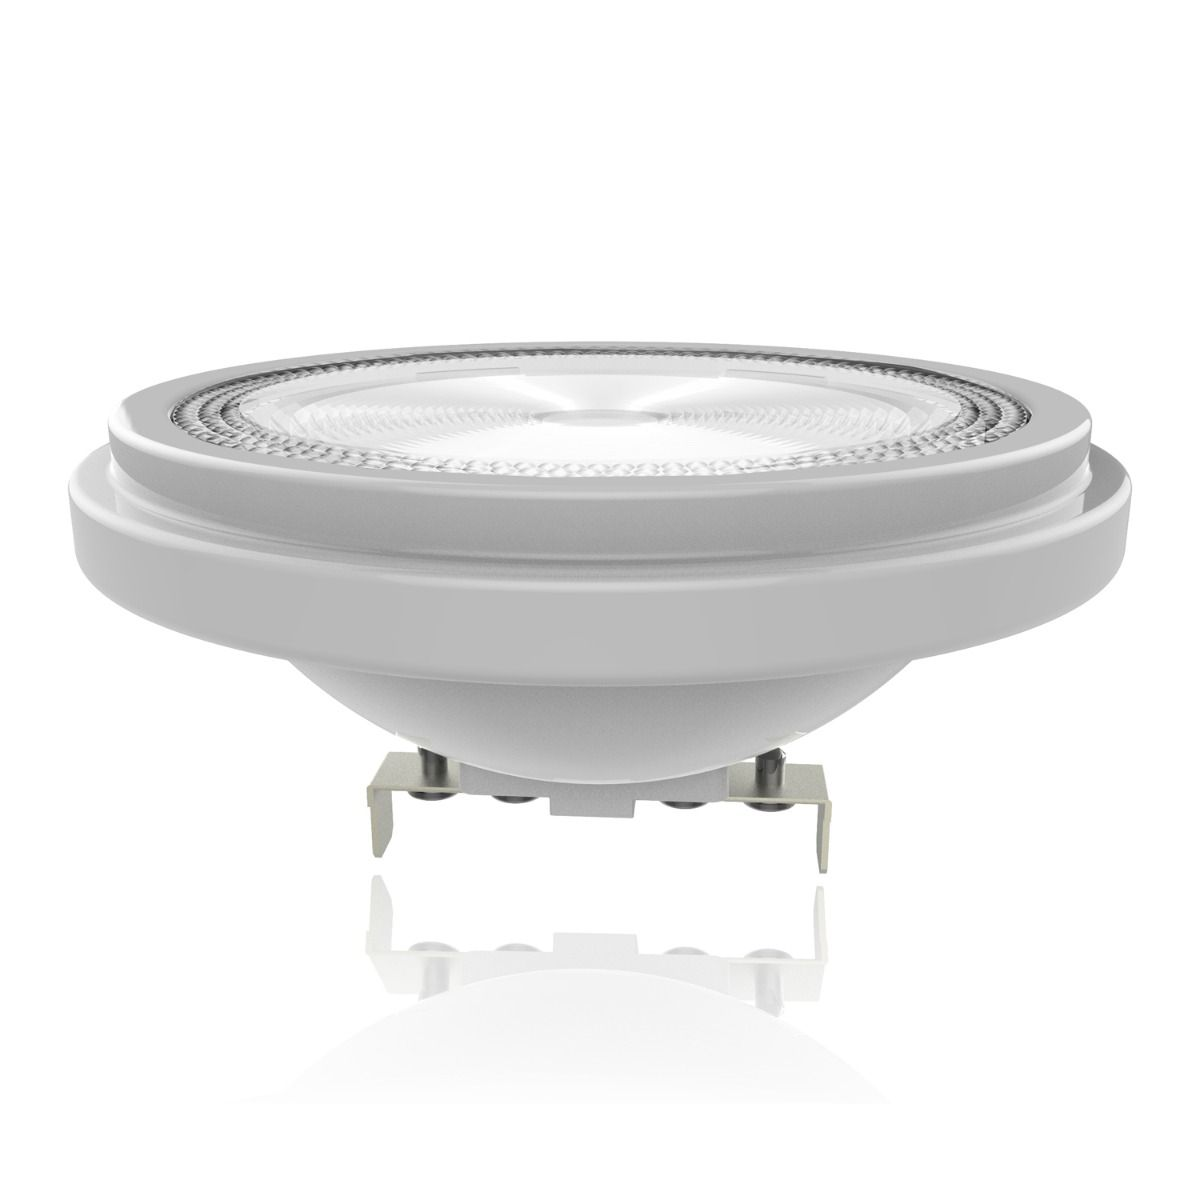 Noxion Lucent LED Spot AR111 G53 12V 11.5W 927 40D | Dimmable - Highest Colour Rendering - Replacer for 75W